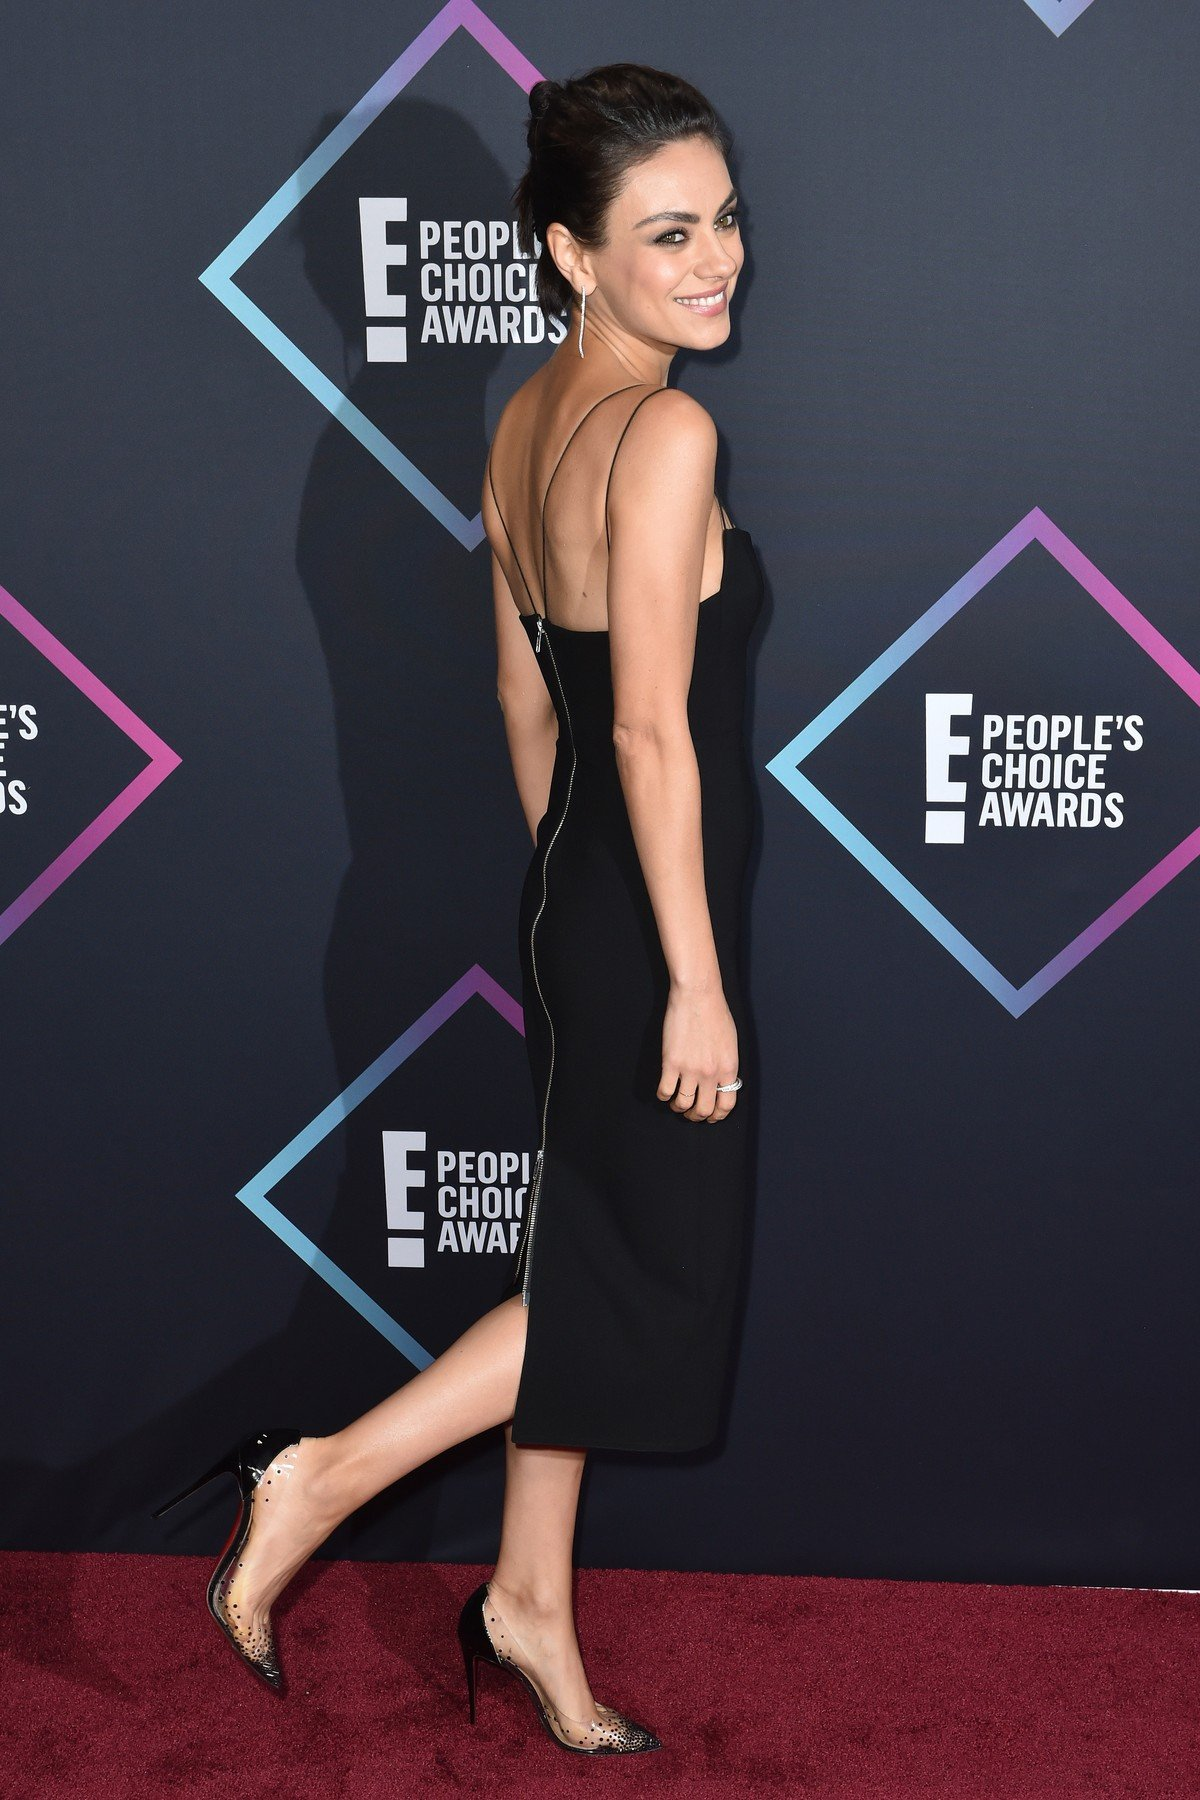 Mila Kunis attends the People's Choice Awards 2018 at Barker Hangar on November 11, 2018 in Santa Monica, CA, USA., Image: 395489549, License: Rights-managed, Restrictions: , Model Release: no, Credit line: Profimedia, Abaca